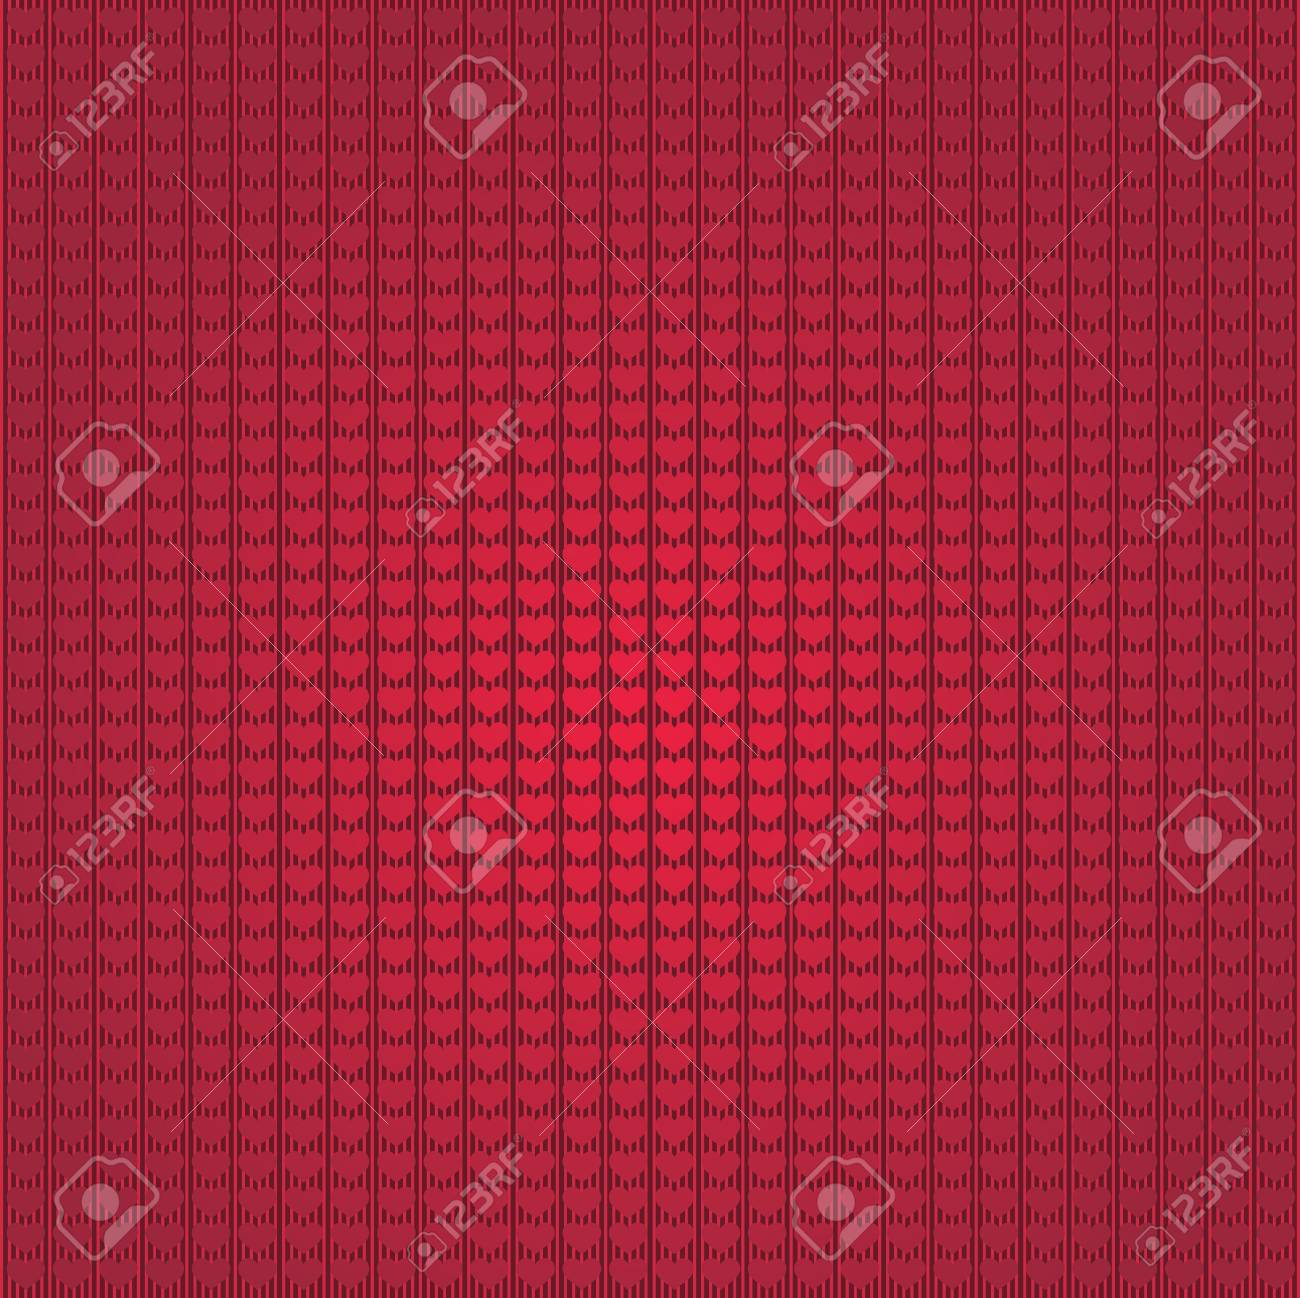 Heart backgrounds. Pattern style heart shapes. Stock Vector - 8045315